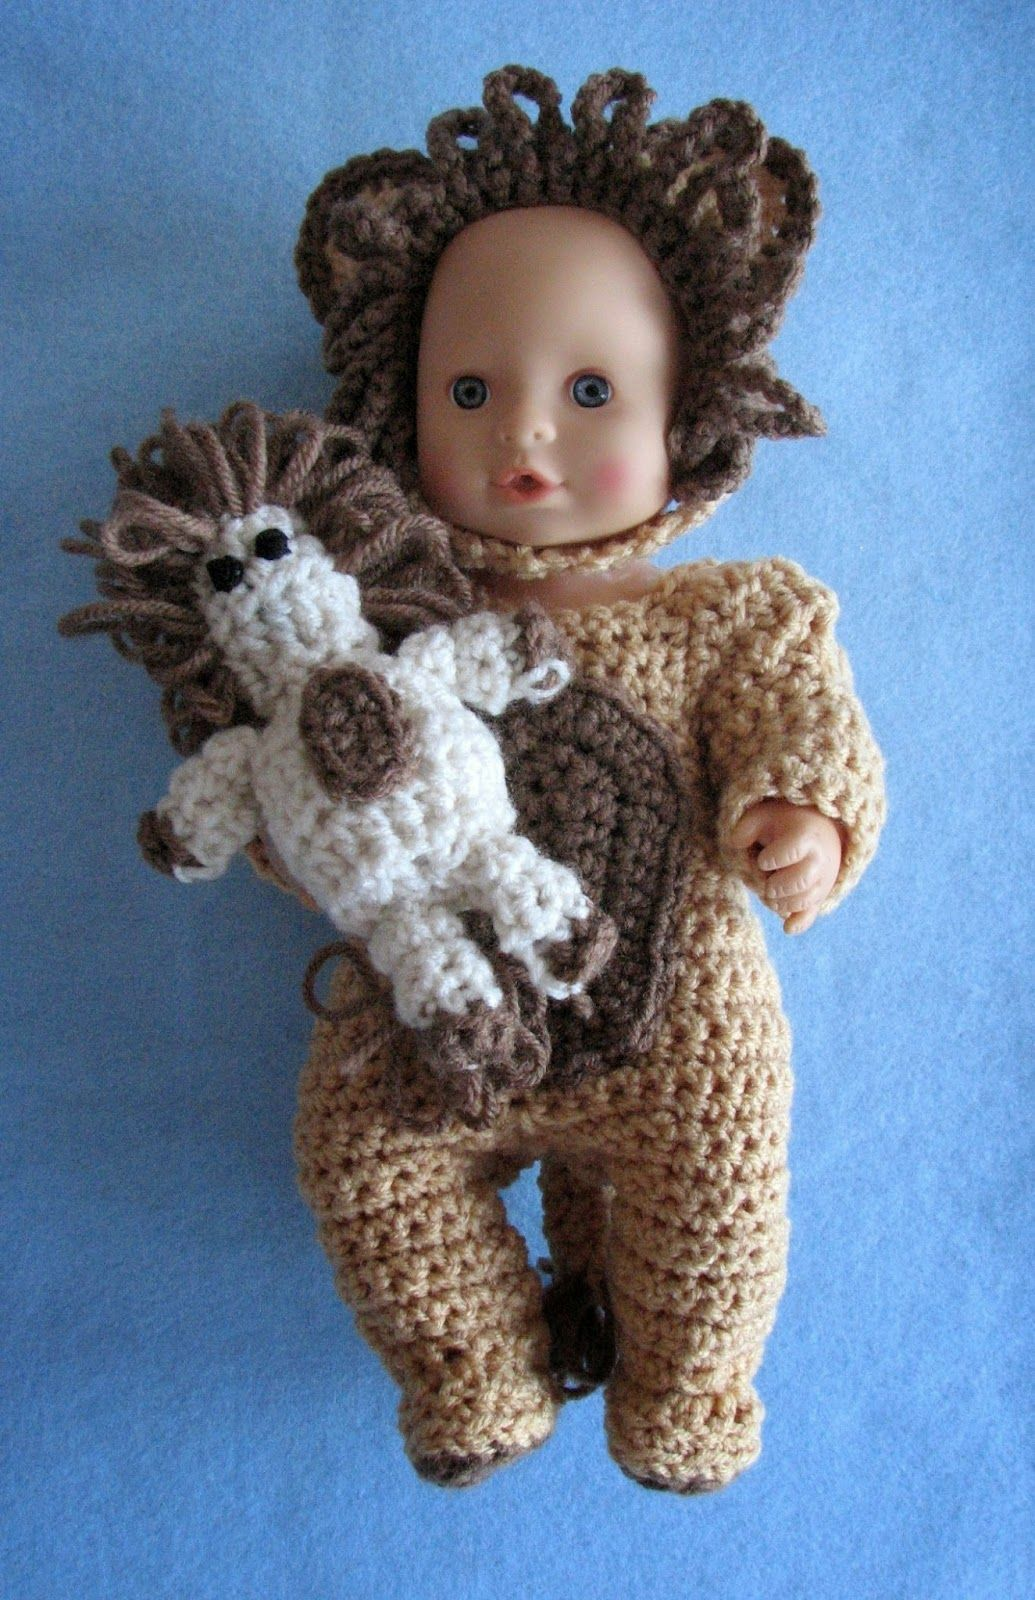 Donnas crochet designs blog of free patterns free crochet free crochet pattern lion costume for baby dolls by donnas crochet designs bankloansurffo Choice Image